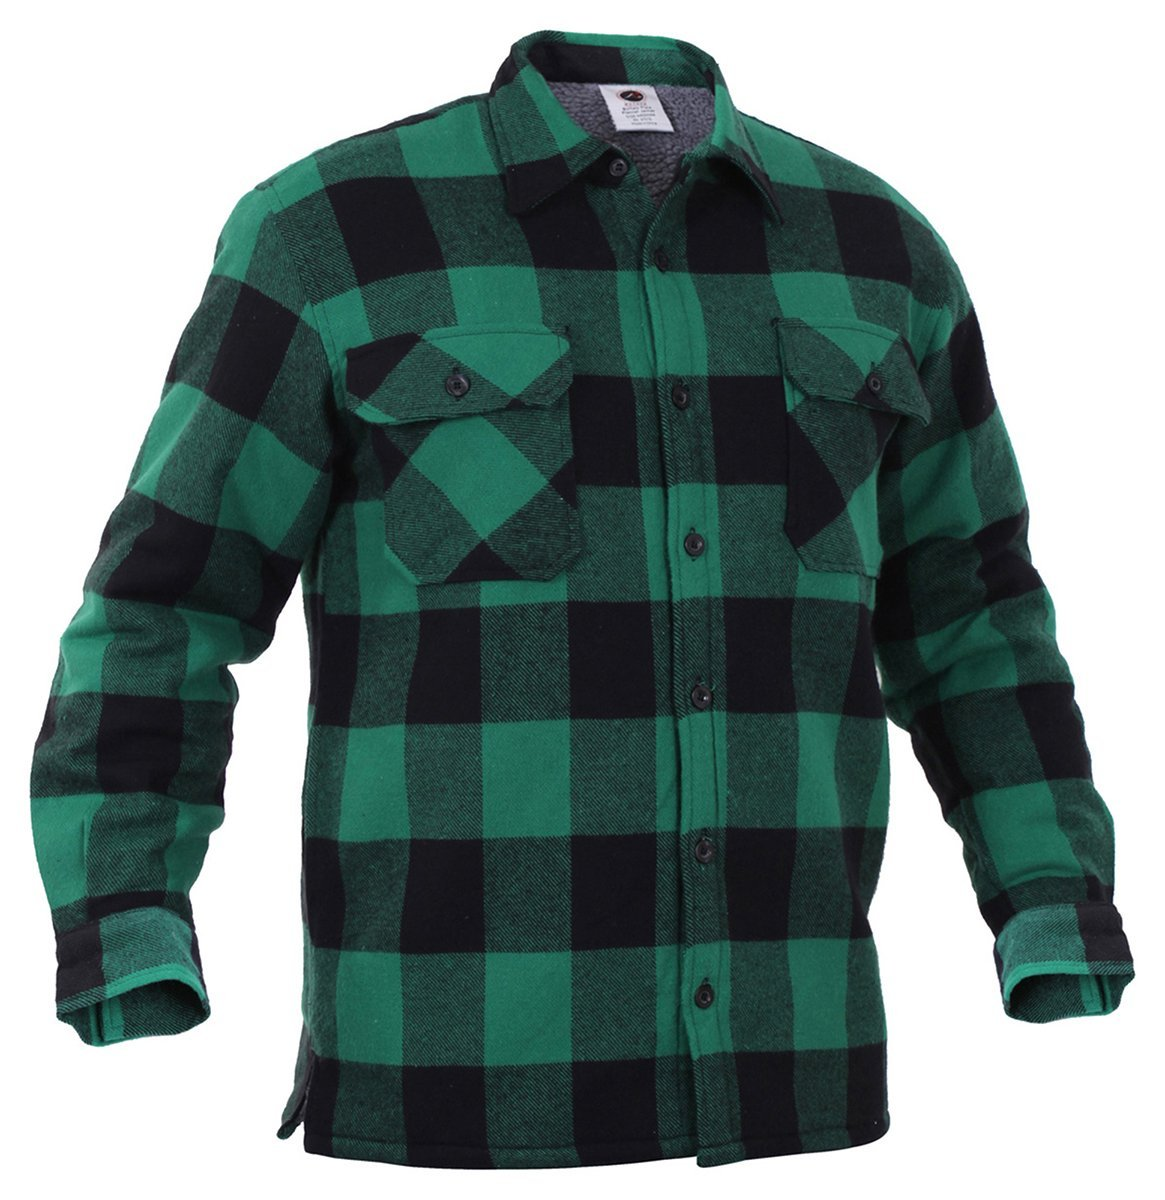 Rothco Extra Heavyweight Buffalo Plaid Sherpa-lined Flannel Shirts - Green, X-Large